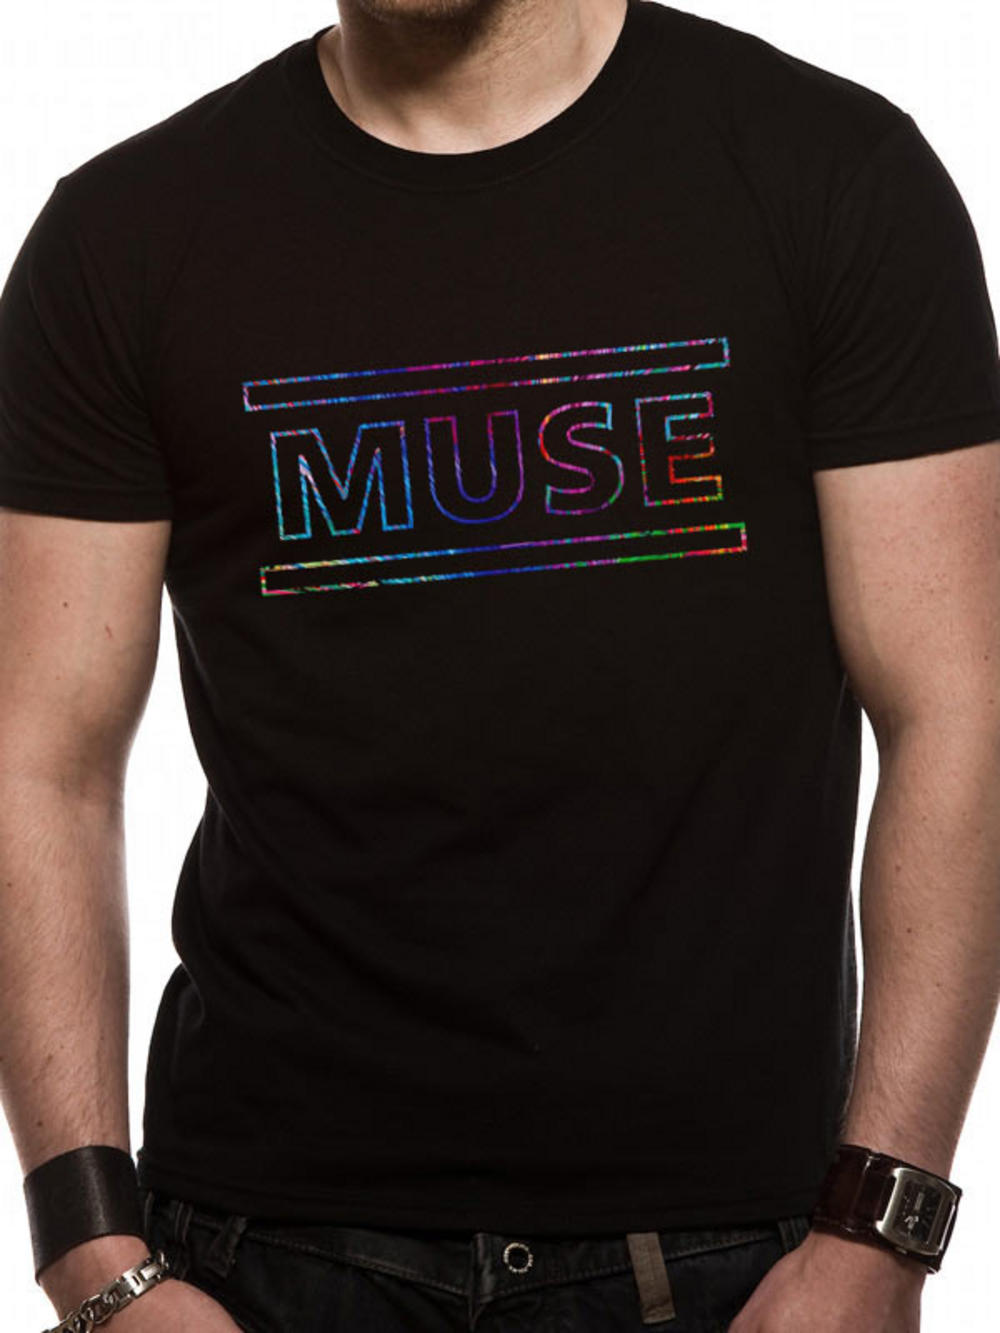 muse the 2nd law logo t shirt tm shop. Black Bedroom Furniture Sets. Home Design Ideas